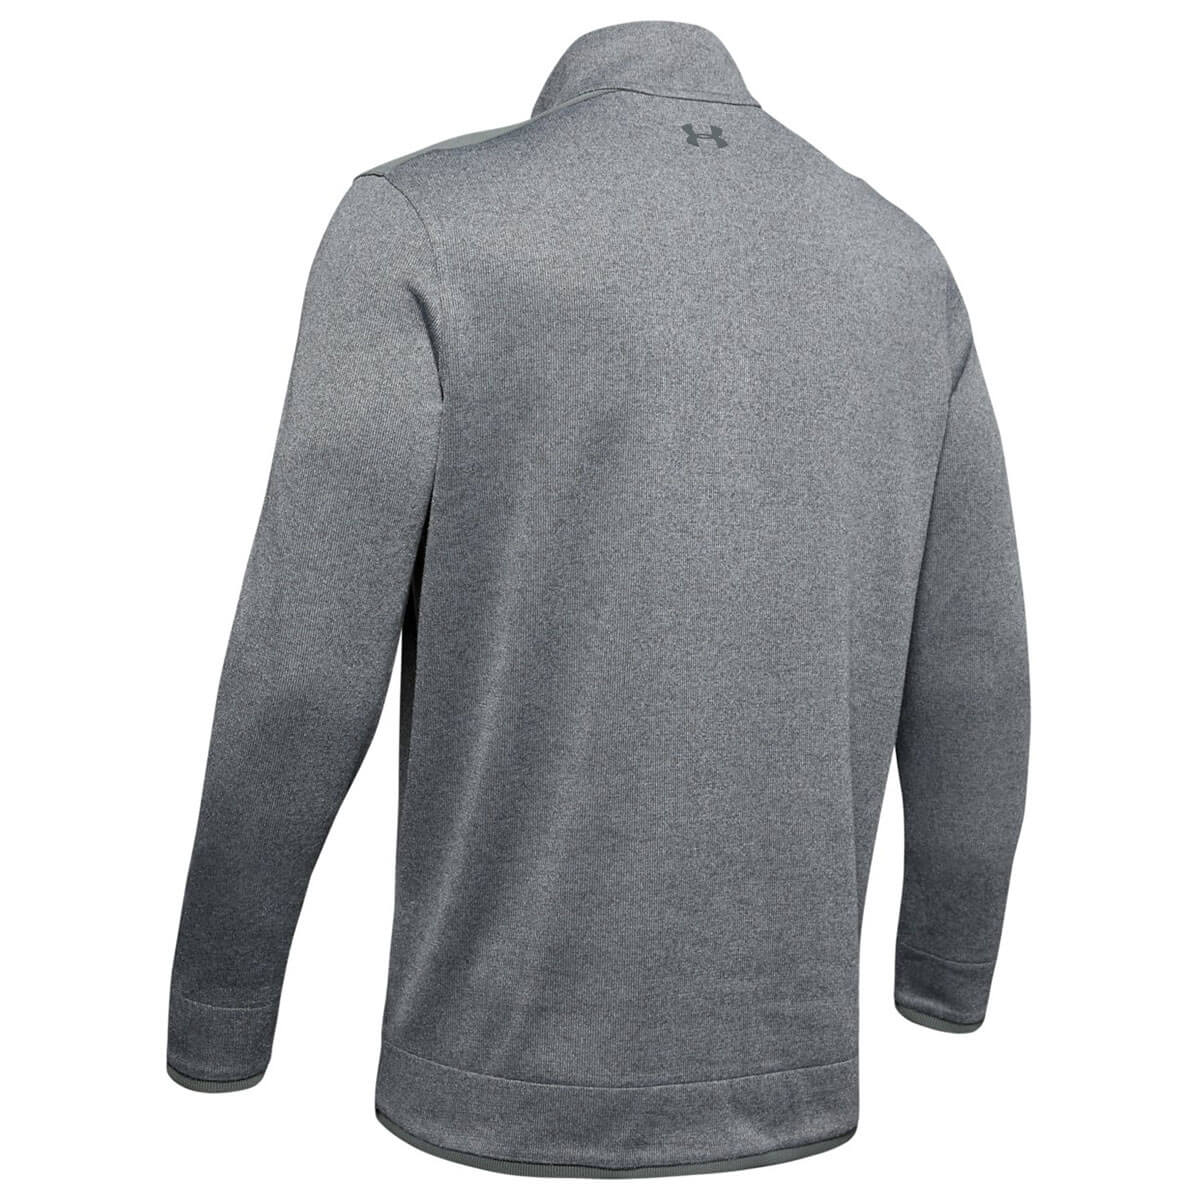 Under-Armour-Homme-UA-sweaterfleece-1-2-zip-resistant-a-l-039-eau-Pullover-40-OFF-RRP miniature 36